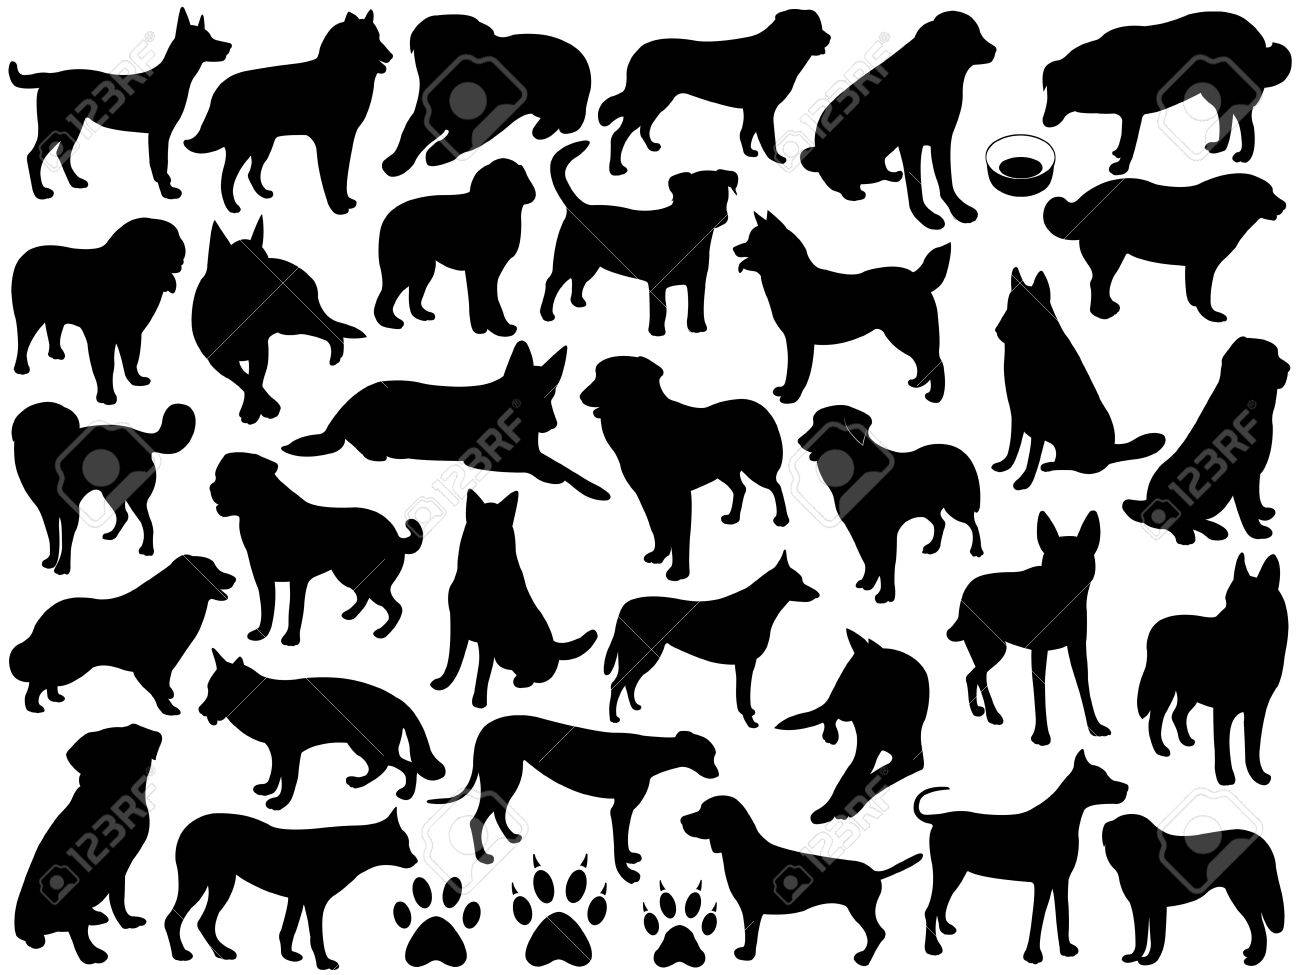 Dogs silhouette collage isolated on white - 12101235